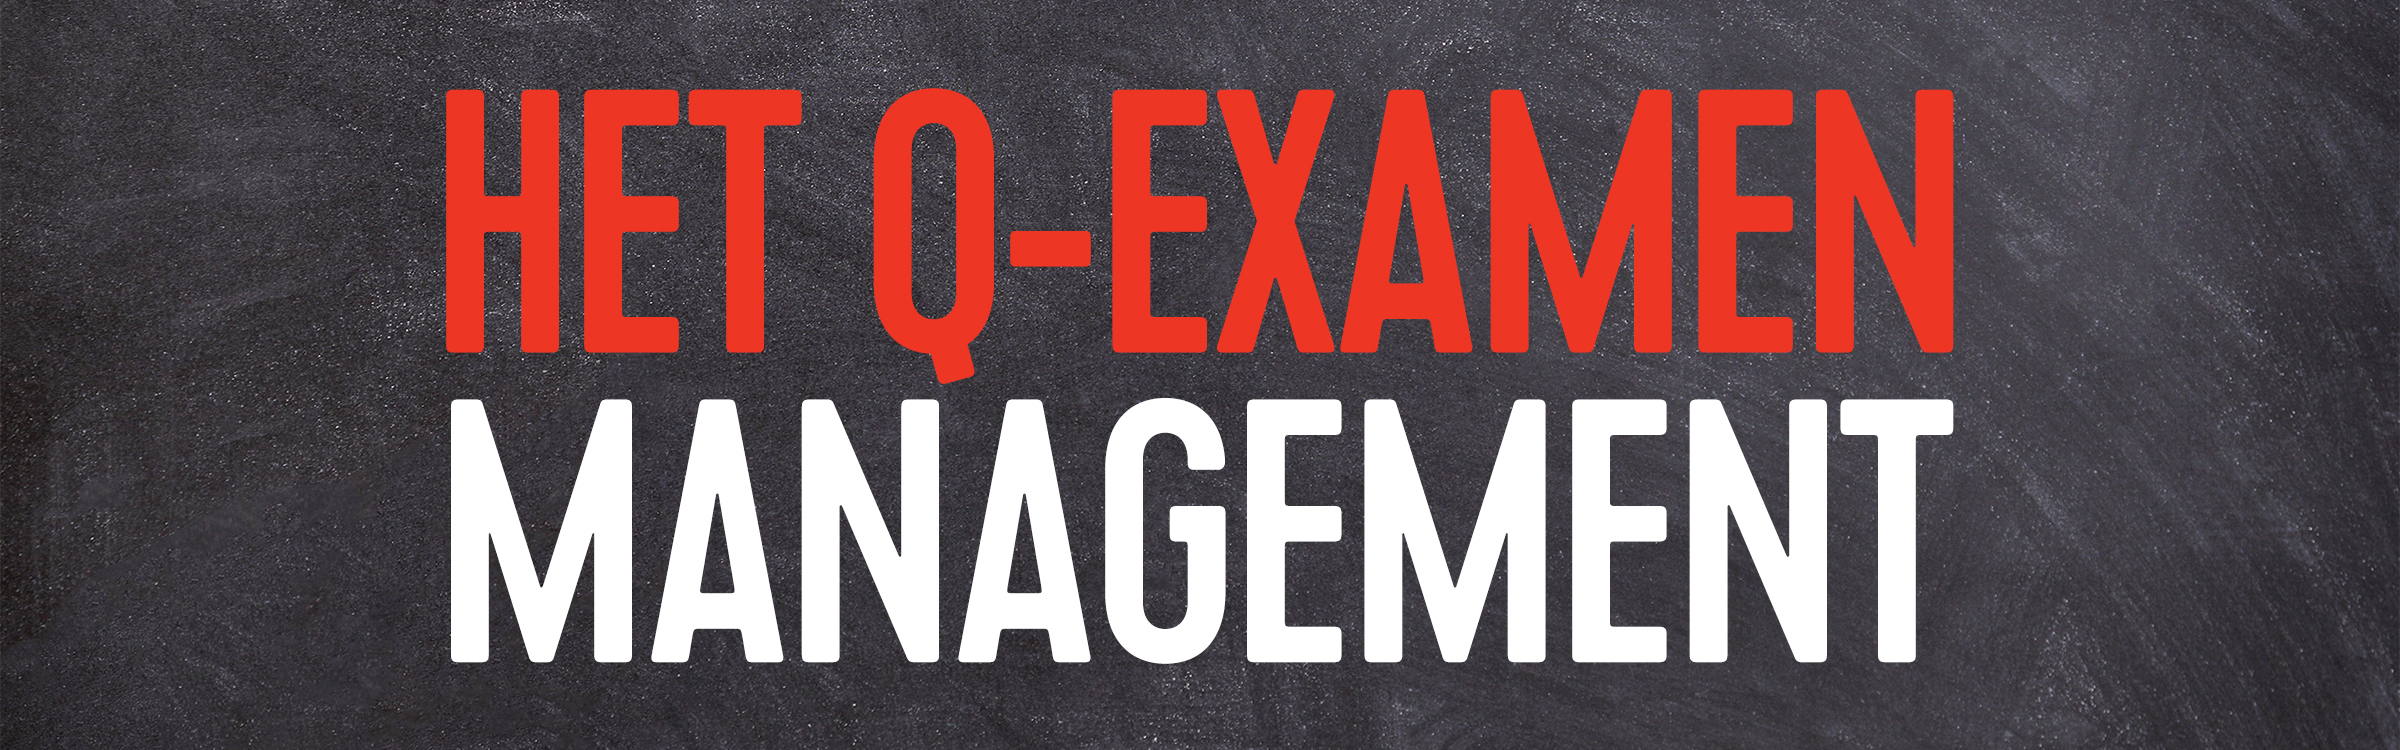 Q examen management header